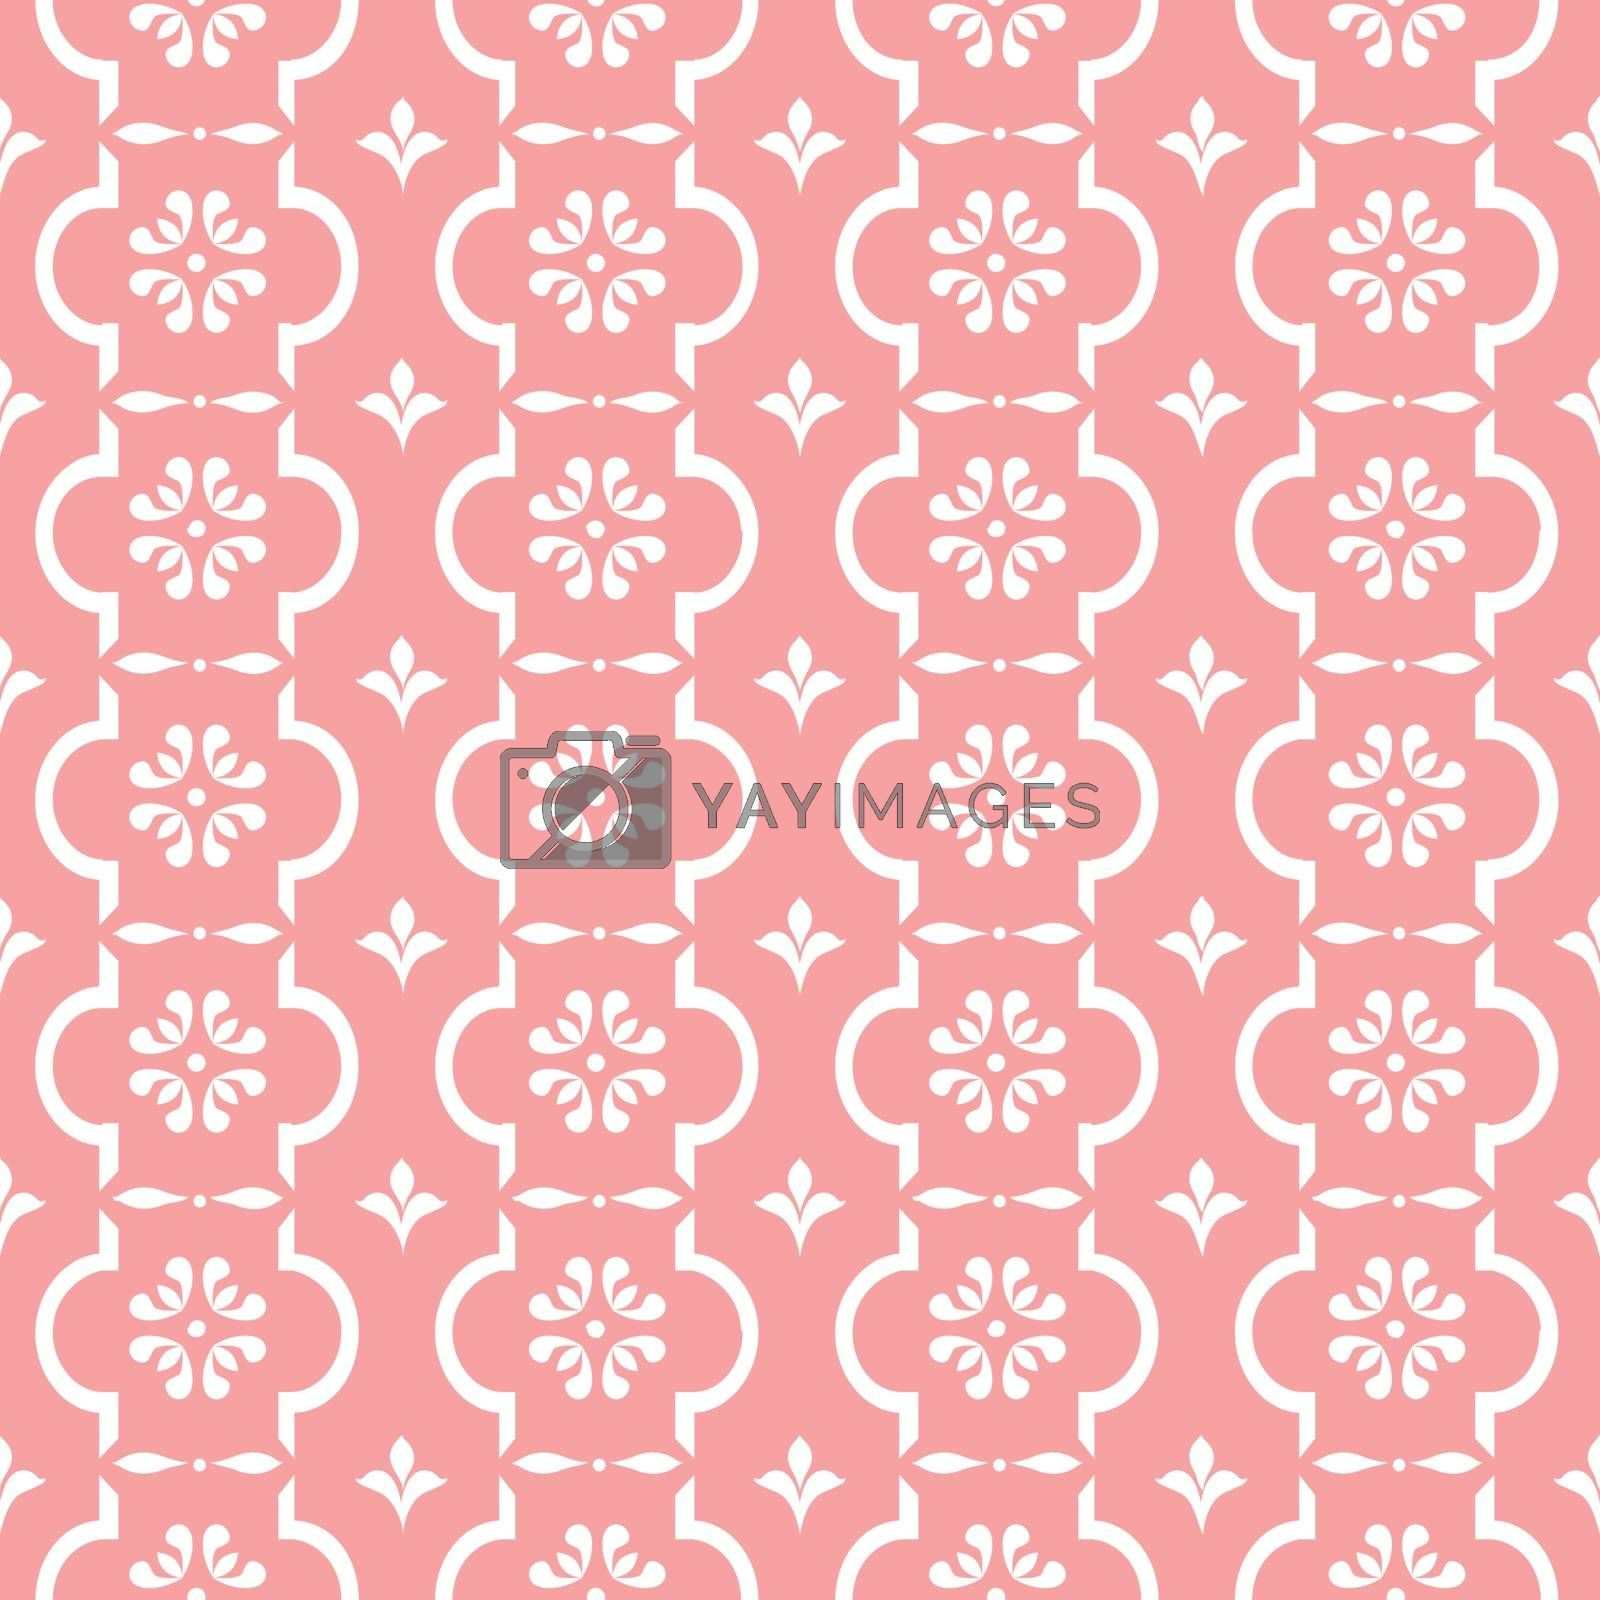 Pastel retro vector pattern tiling. Endless texture can be used for printing onto fabric and paper or scrap booking, surface textile, web page background. Flower abstract shapes